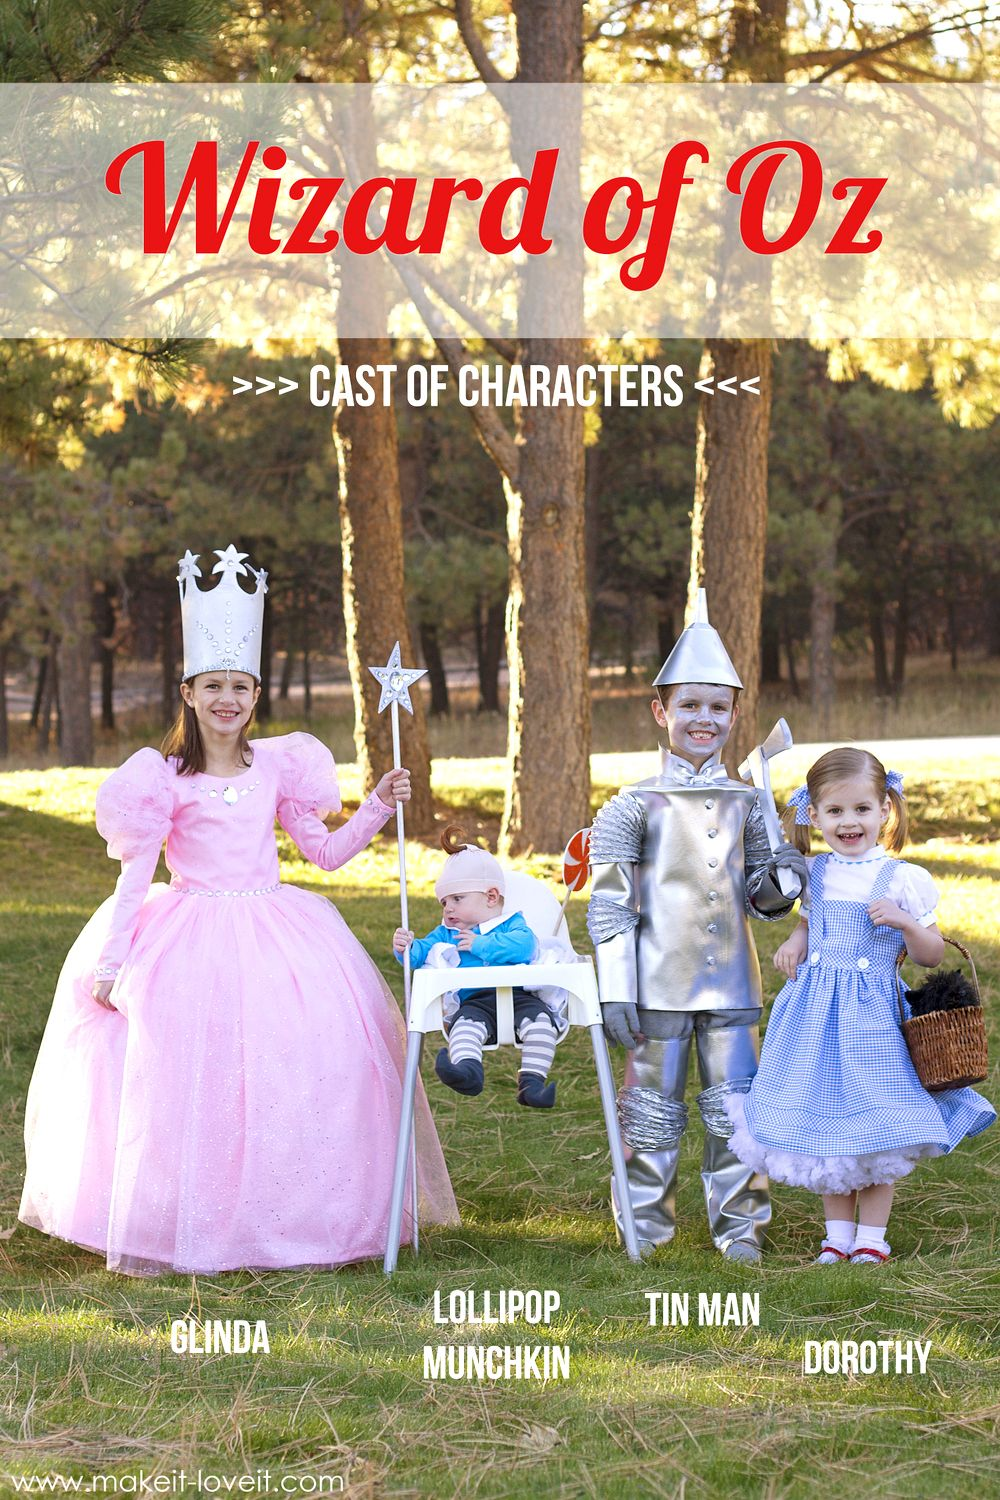 diy quotwizard of ozquot costumes glinda tin man dorothy and